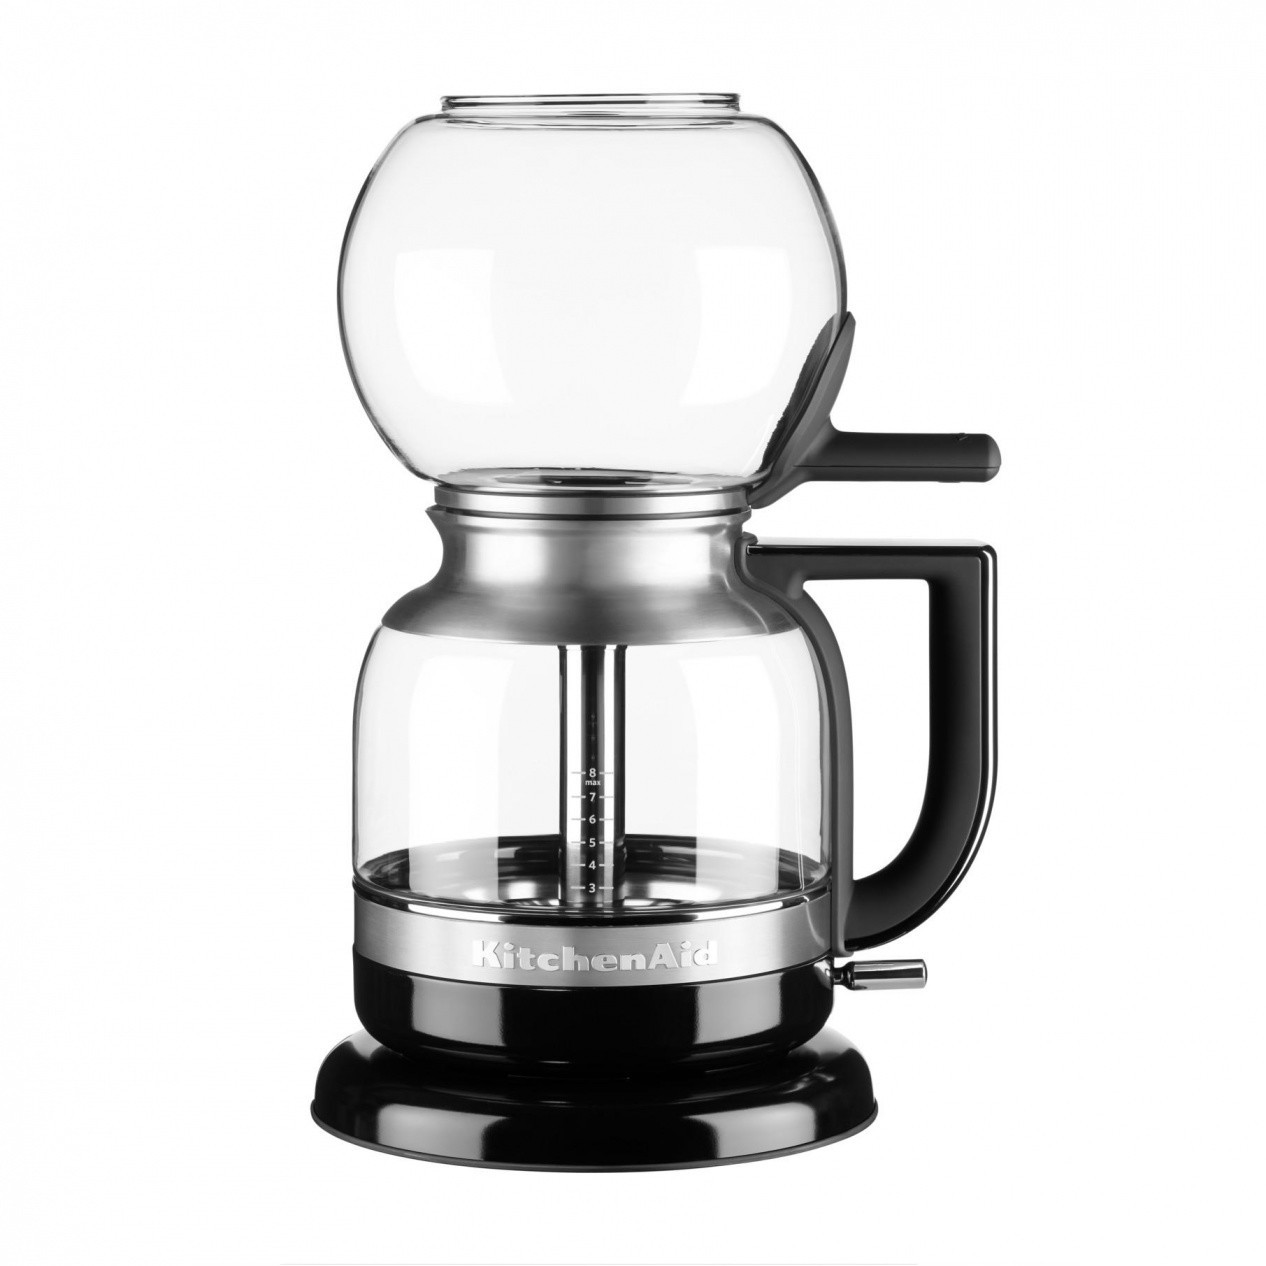 Kitchenaid Artisan 5kcm0812ob Siphon Coffee Maker Ambientedirect